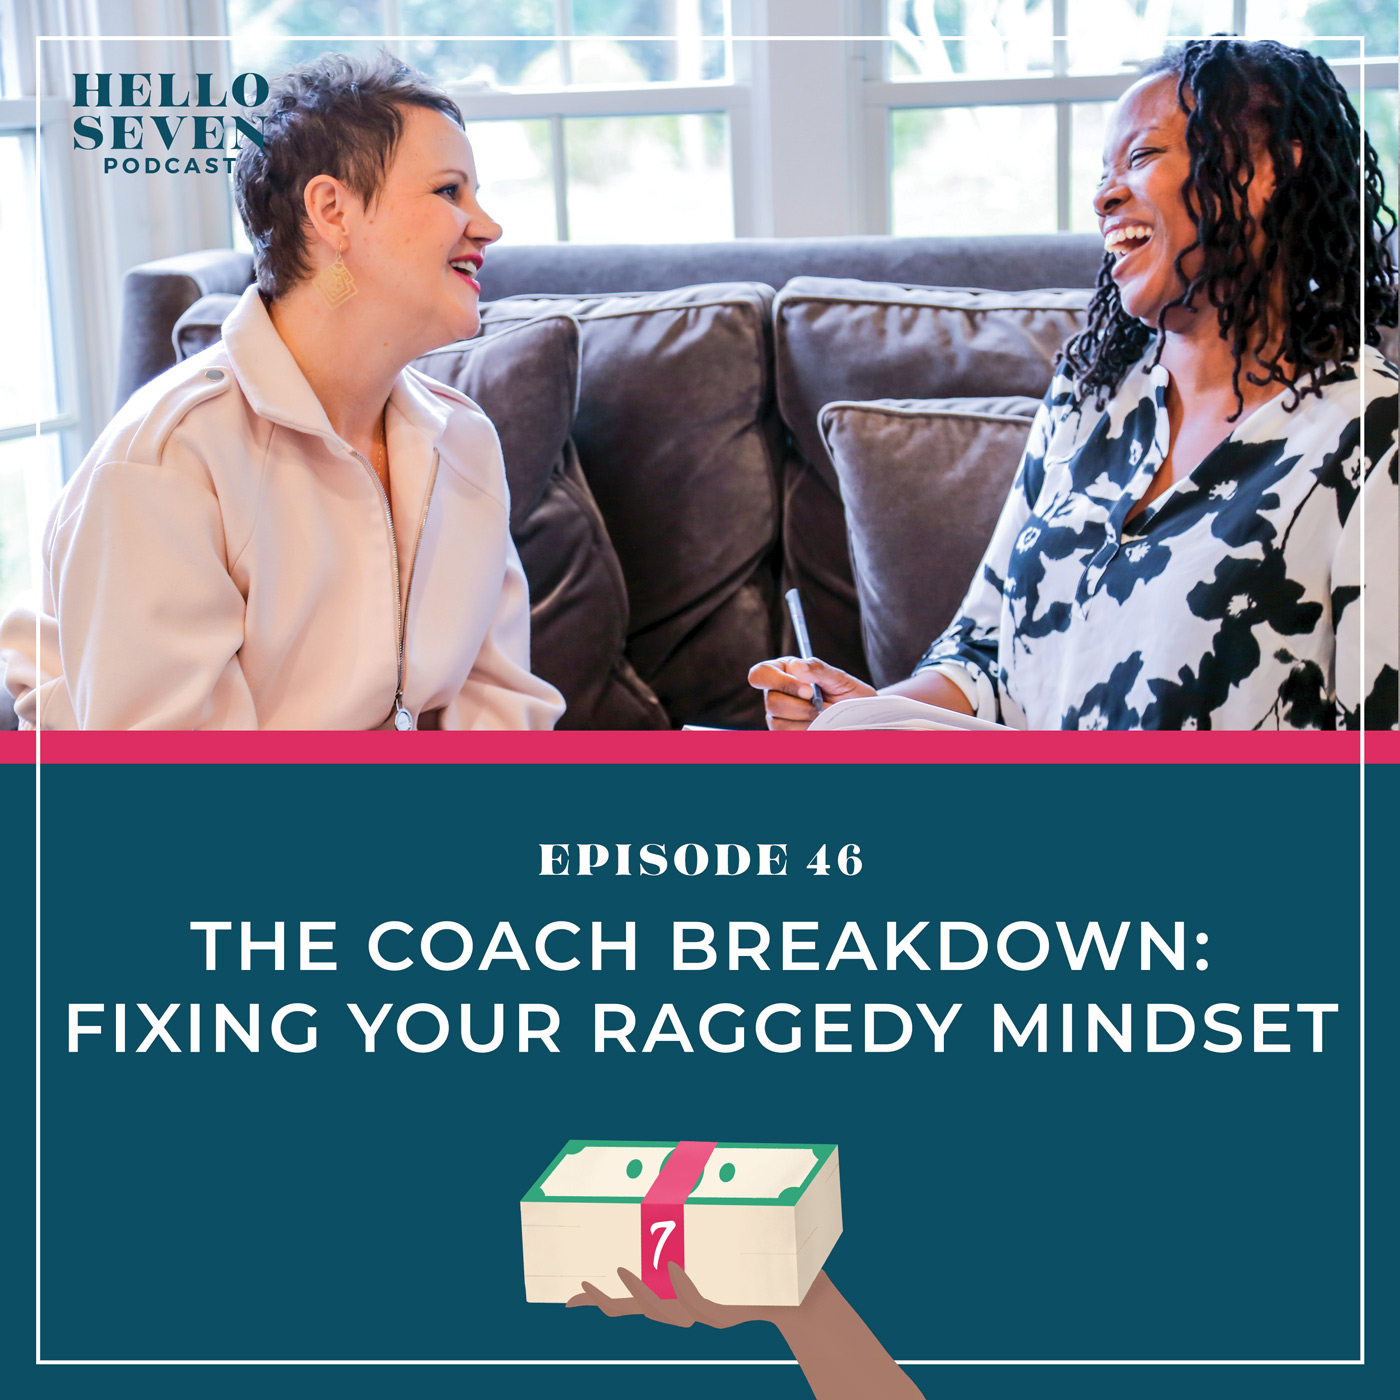 The Coach Breakdown: Fixing Your Raggedy Mindset